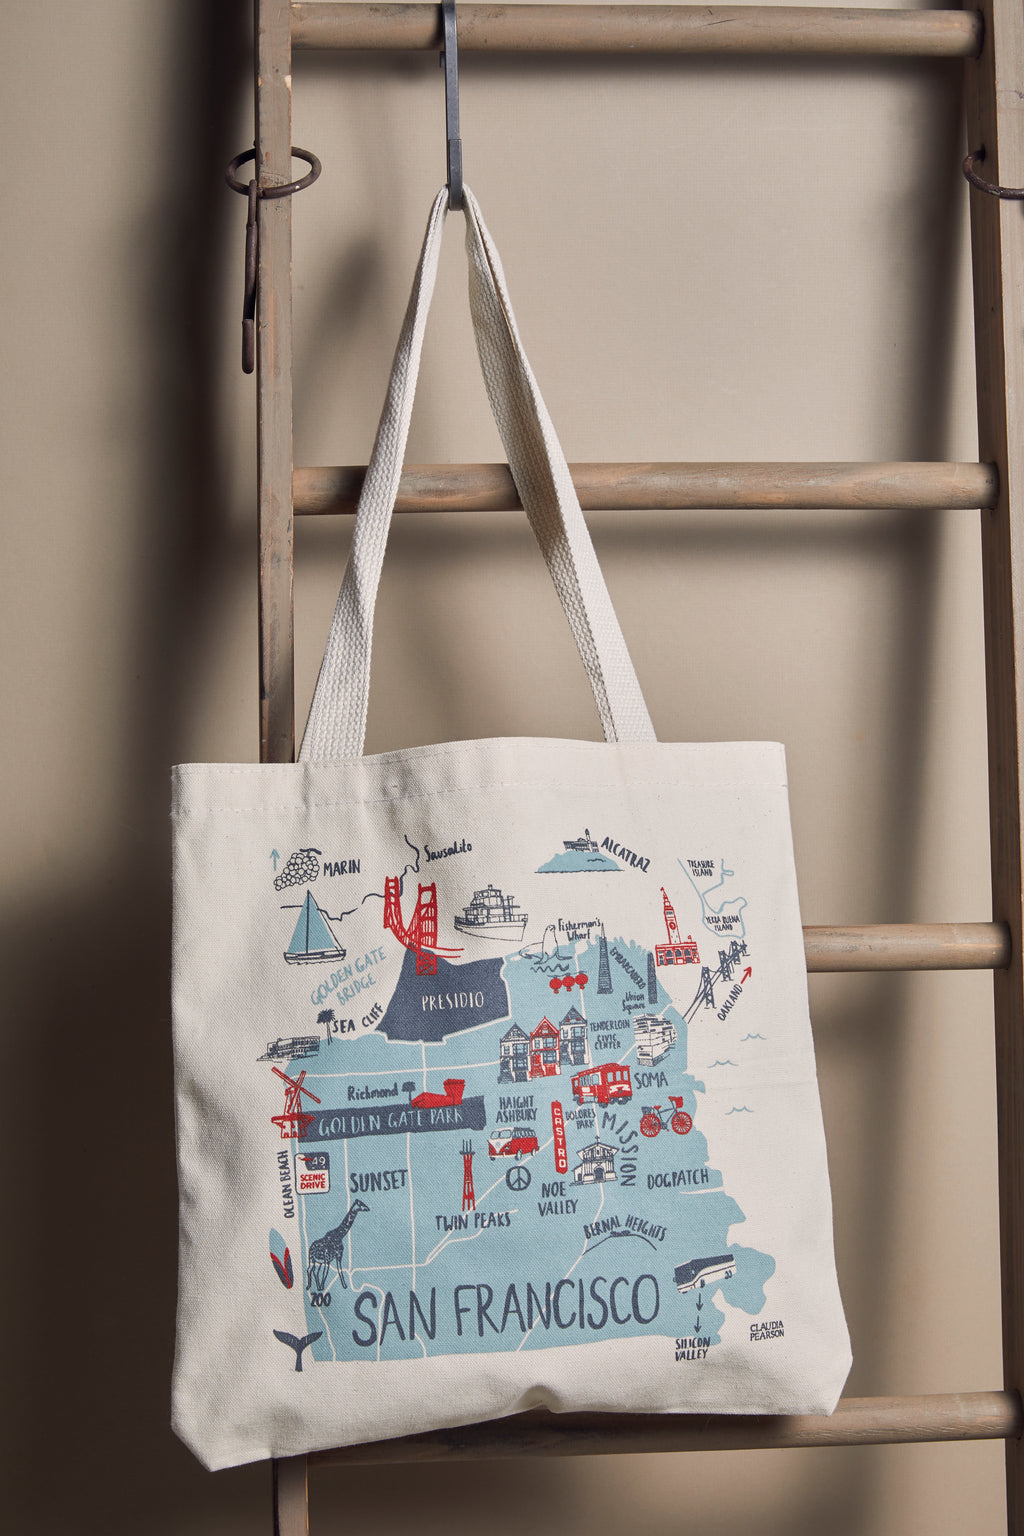 San Francisco Everyday Map Tote